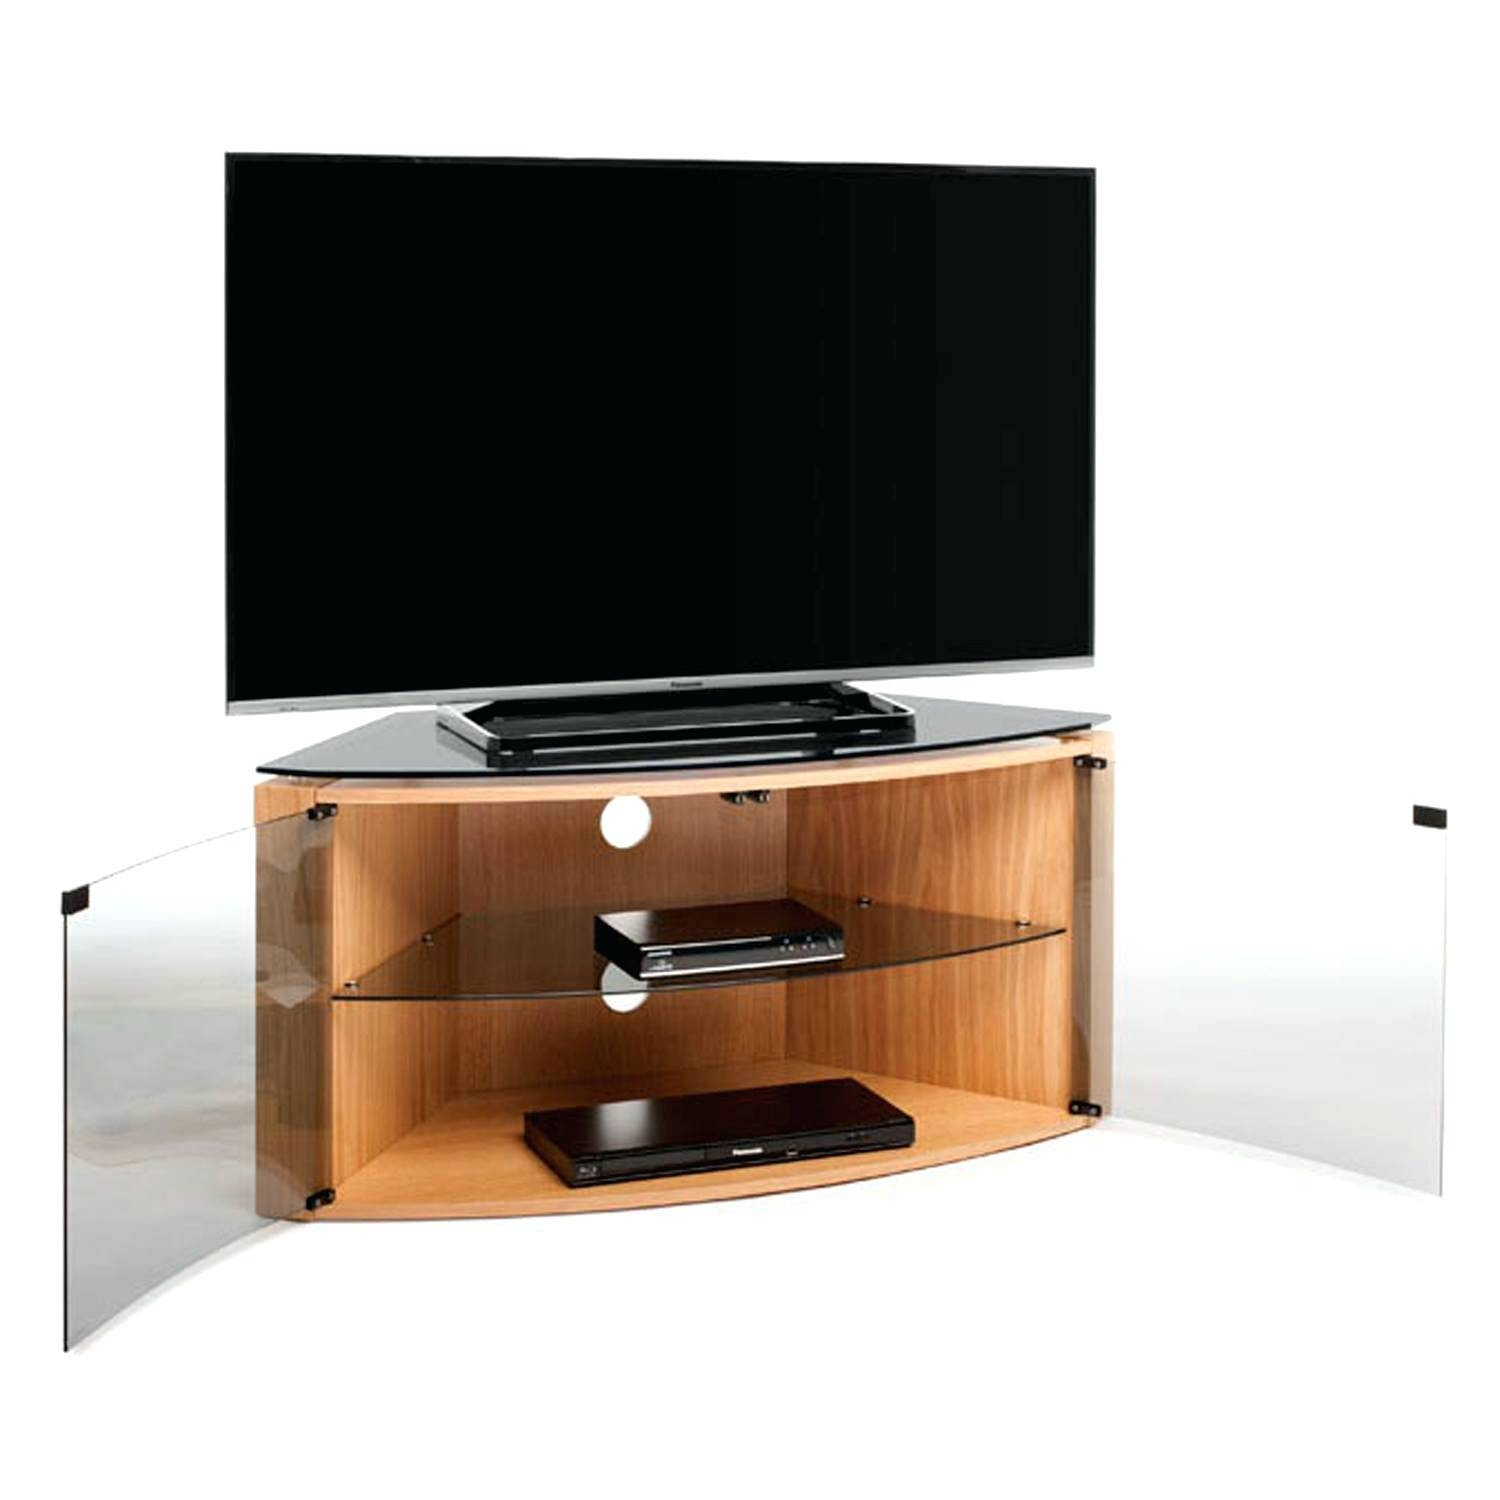 Tv Stand : Splendid Explore Ikea Tv Tv Bench And More Modern Tv with Techlink Bench Corner Tv Stands (Image 12 of 15)